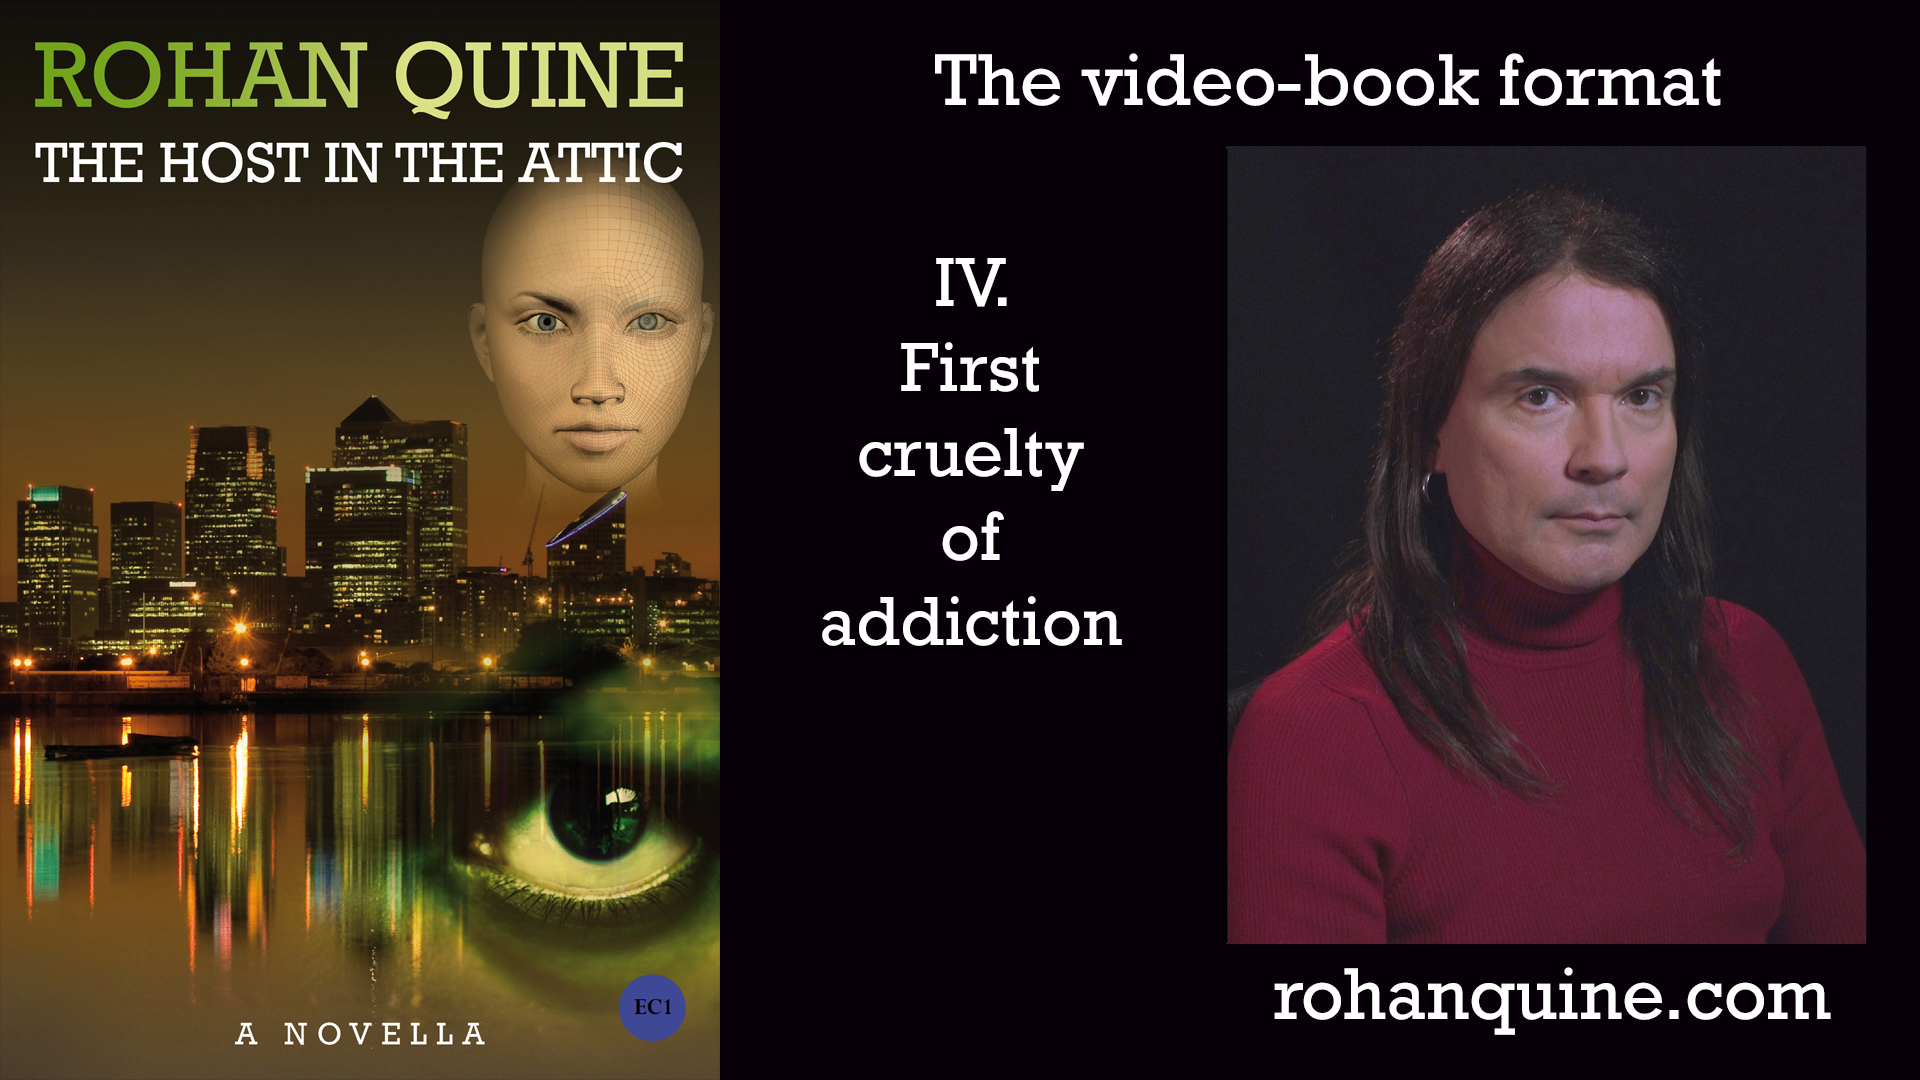 THE HOST IN THE ATTIC by Rohan Quine - video-book format - chapter IV